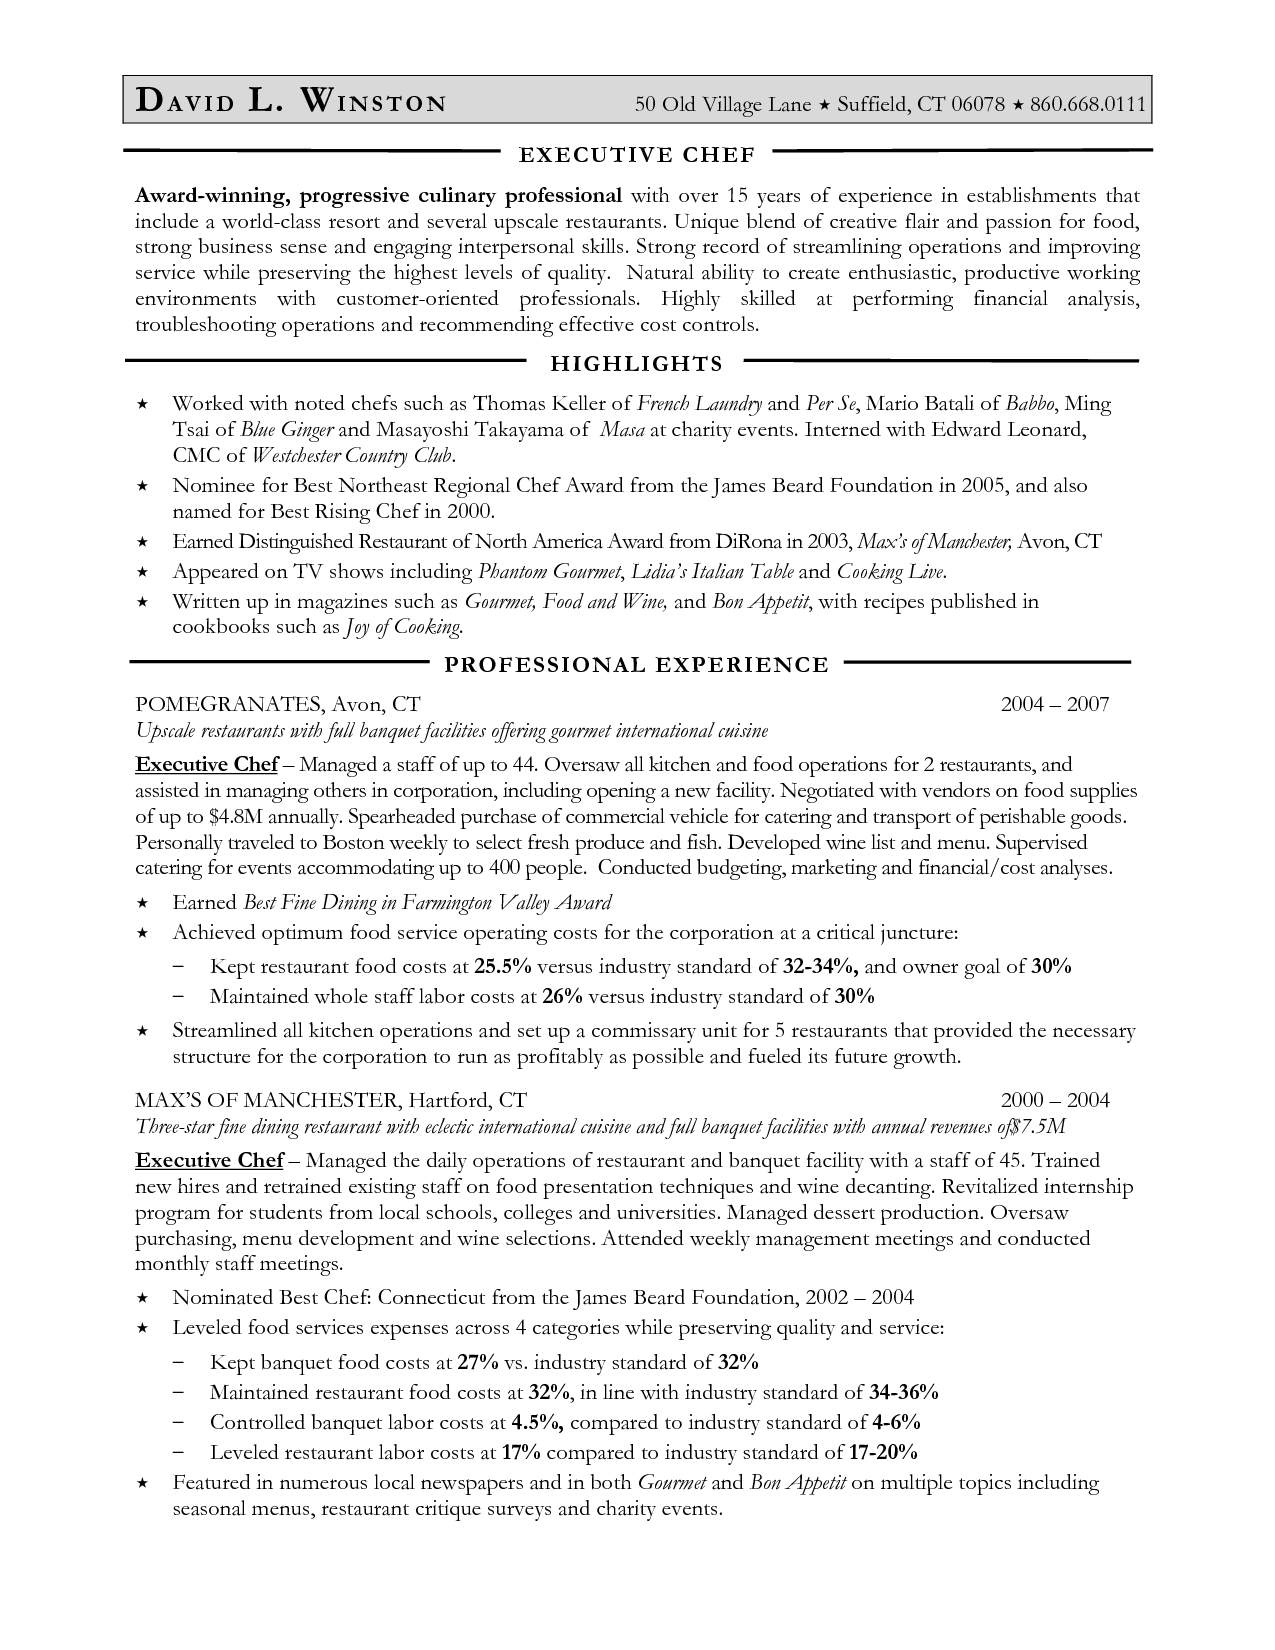 pastry chef resume samples httpwwwjobresumewebsitepastry - Chef Resume Example